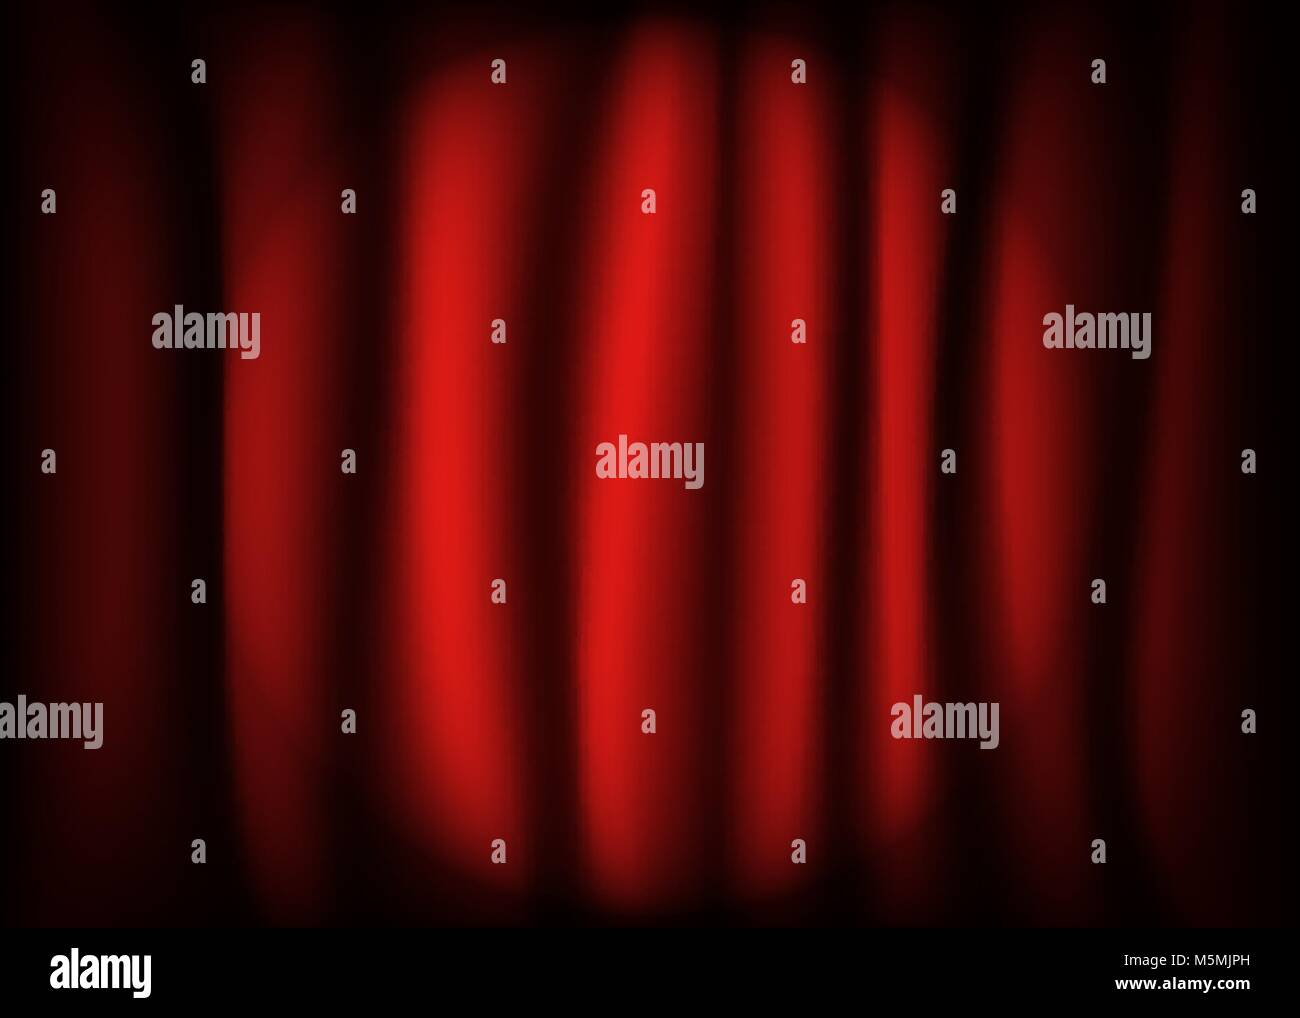 Spotlight on stage   red curtain. - Stock Vector